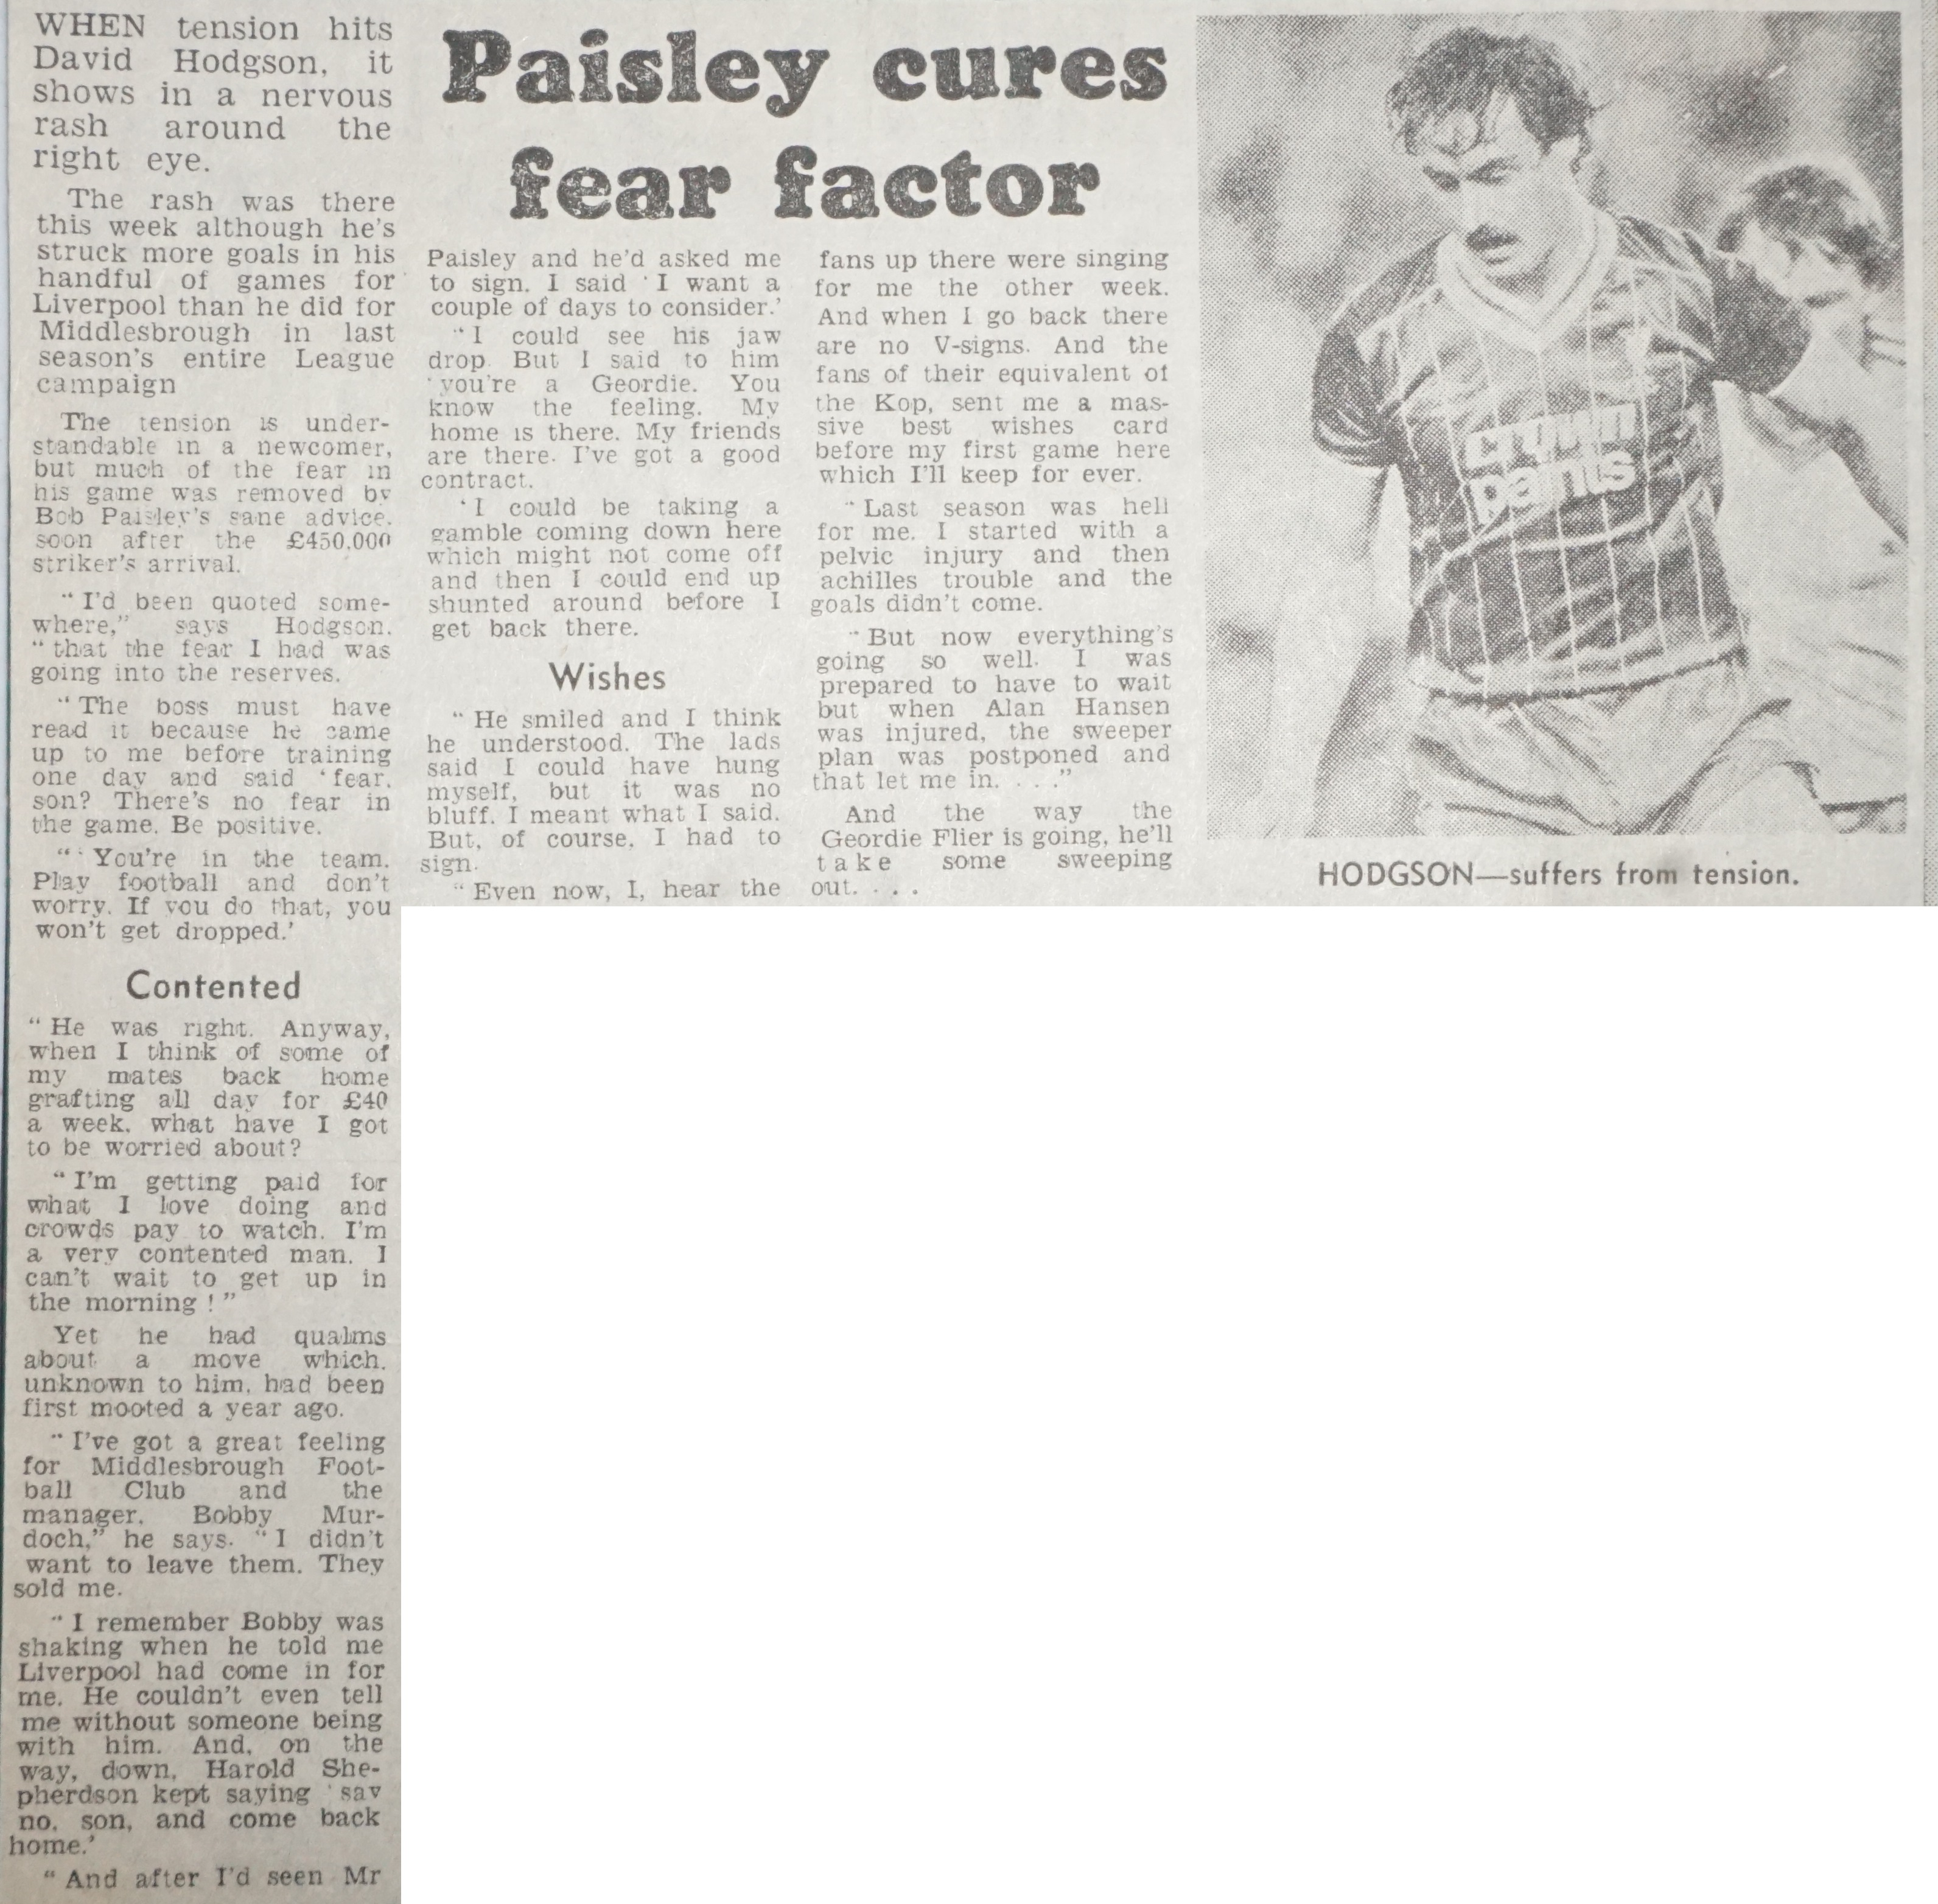 Paisley cures Hodgson's fear factor - September 1983